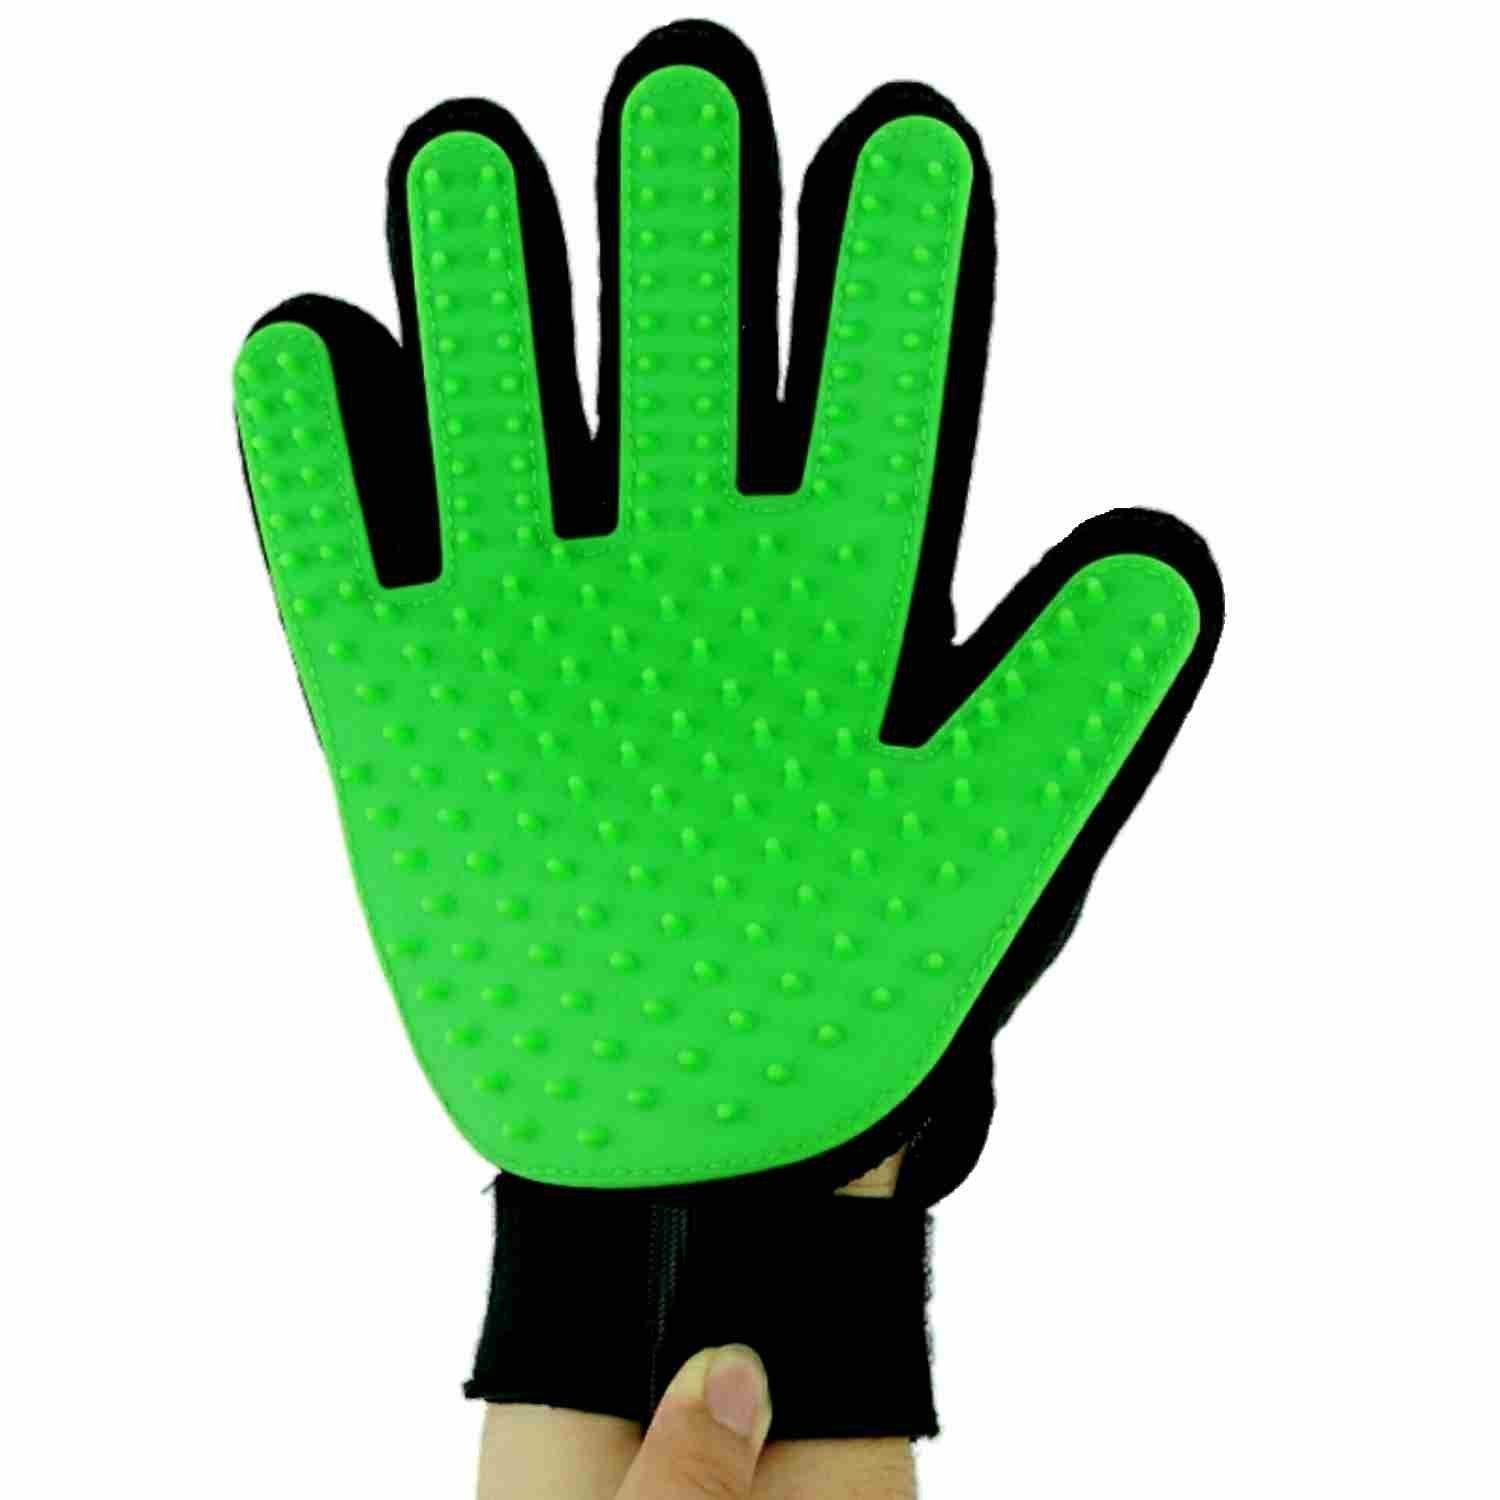 Blue D/&/&R Pet Grooming Glove 2-in-1 Dog Cat Grooming Massage Gloves Hair Remover Brush Rubber Tips for Long and Short Hair by Pack of 1